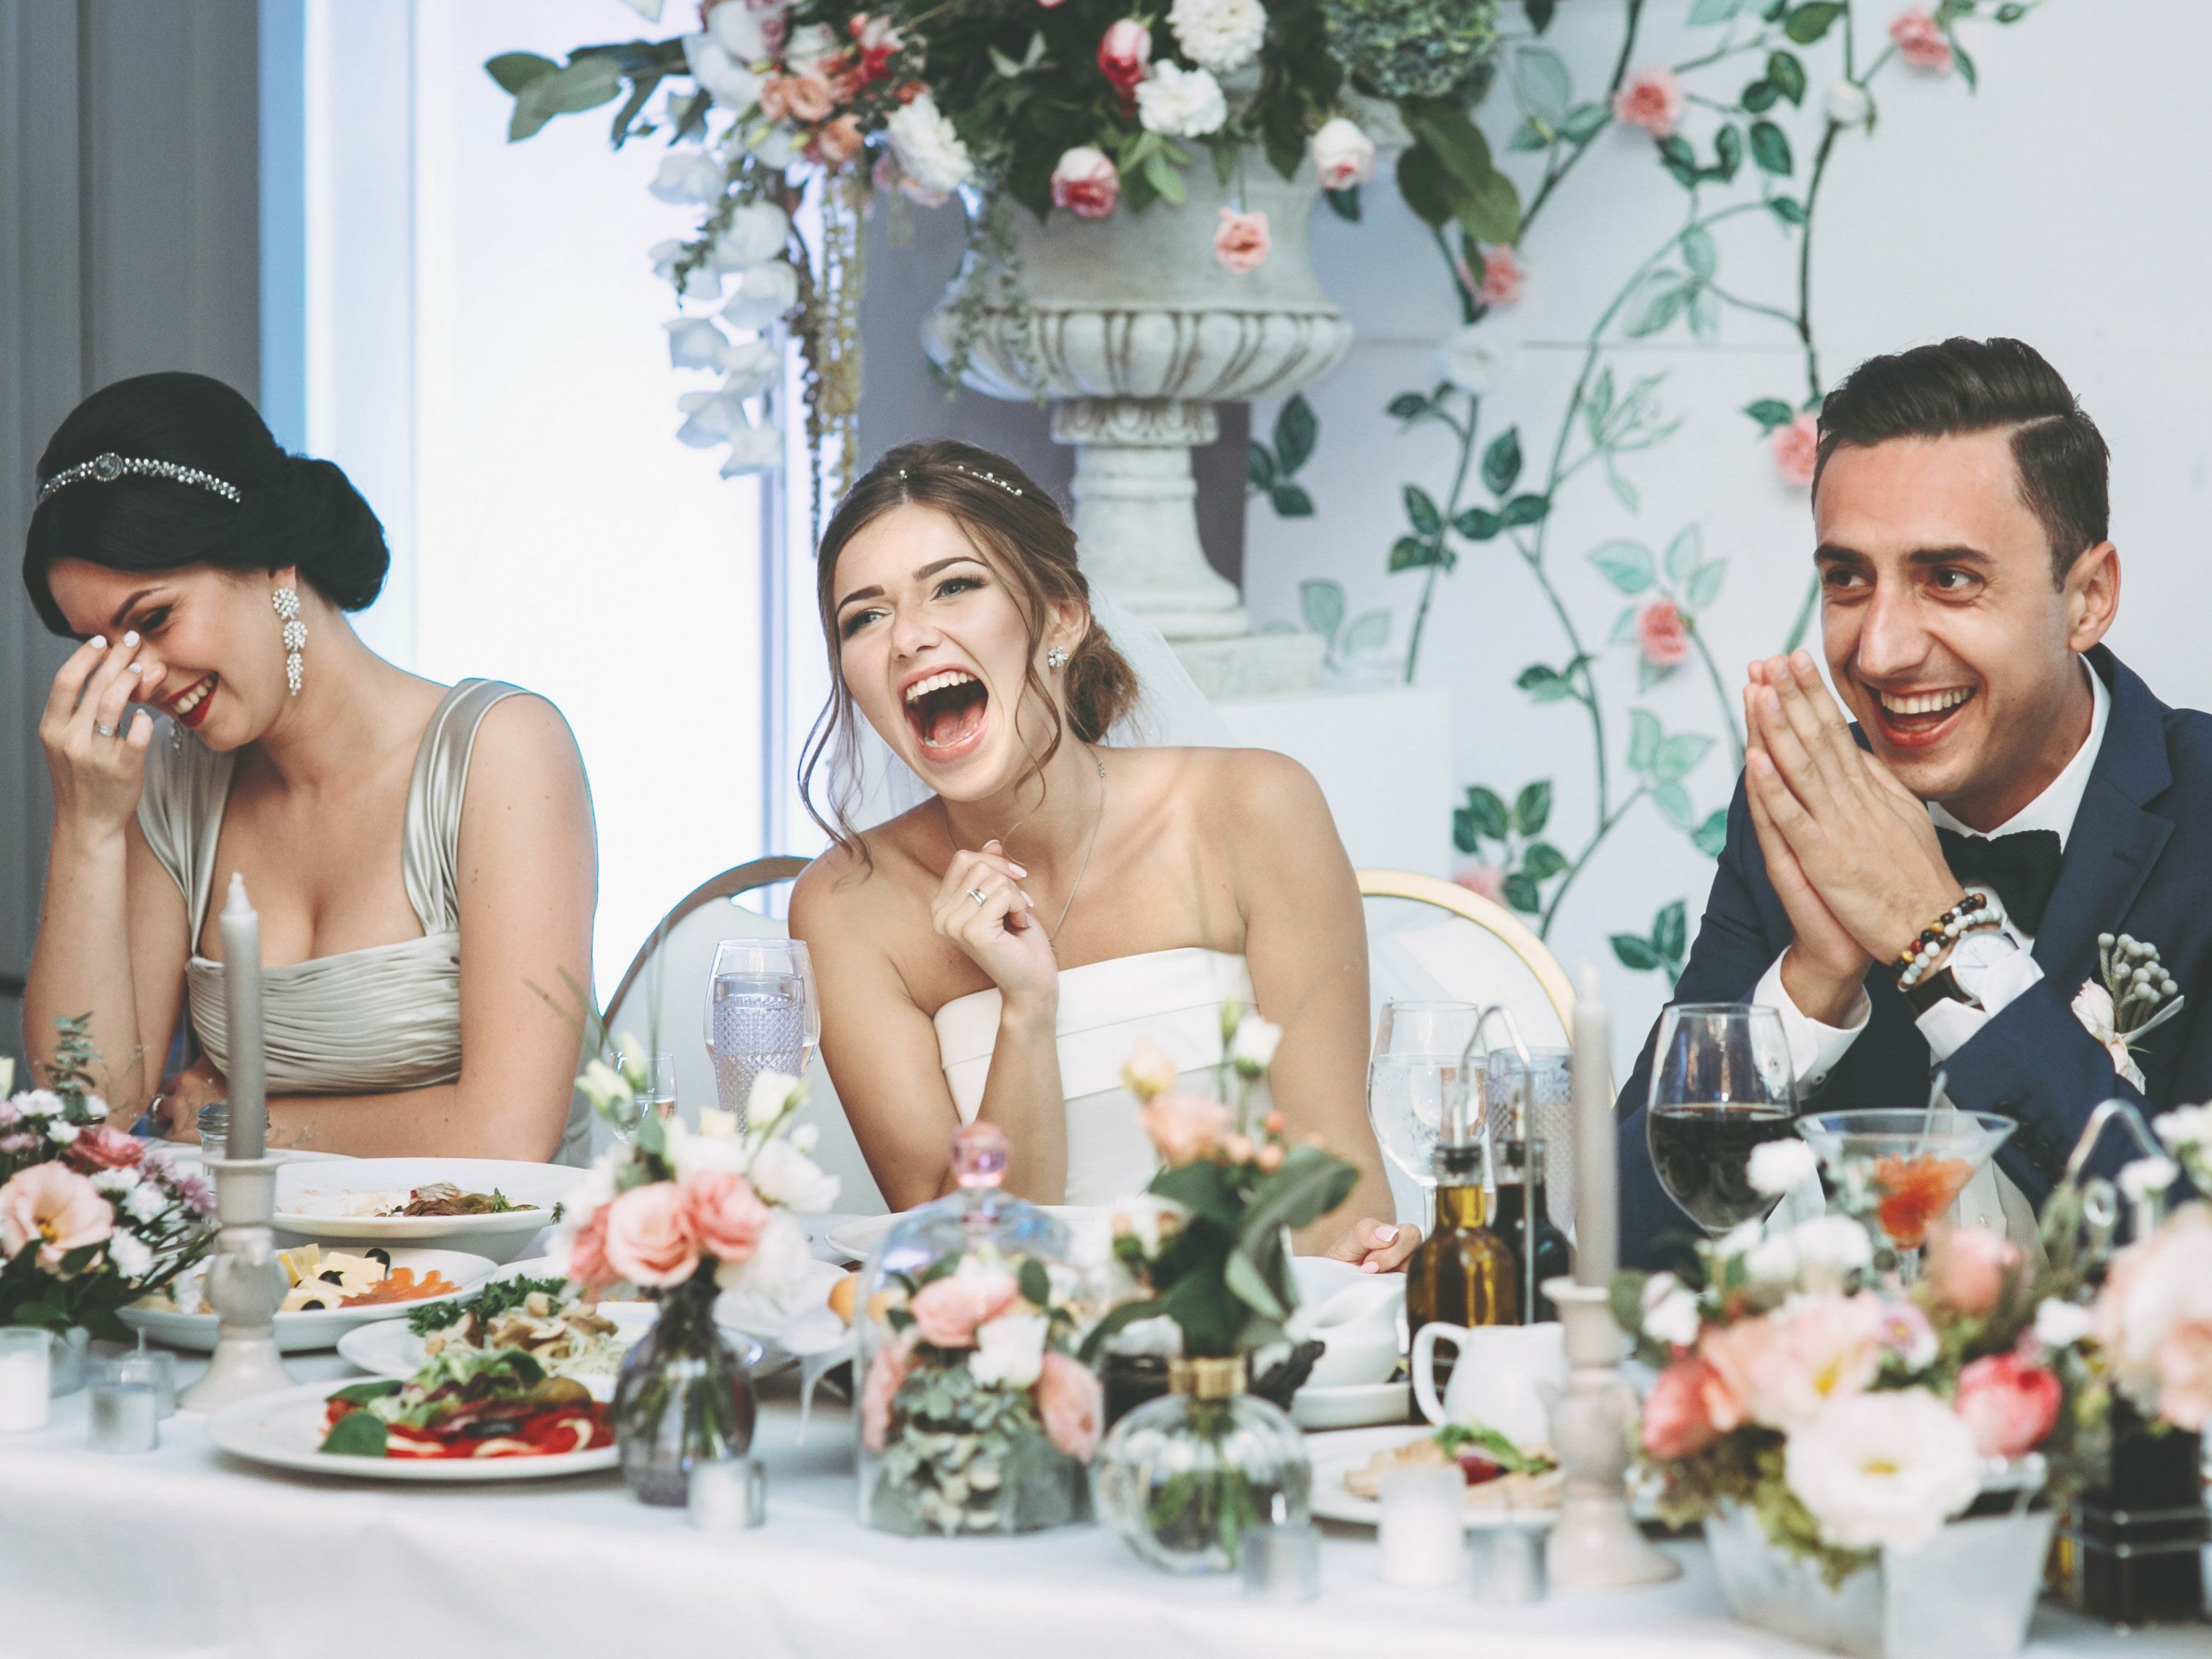 pictures Wedding Etiquette 101: The Guest Faux Pas You Don't Want to Make